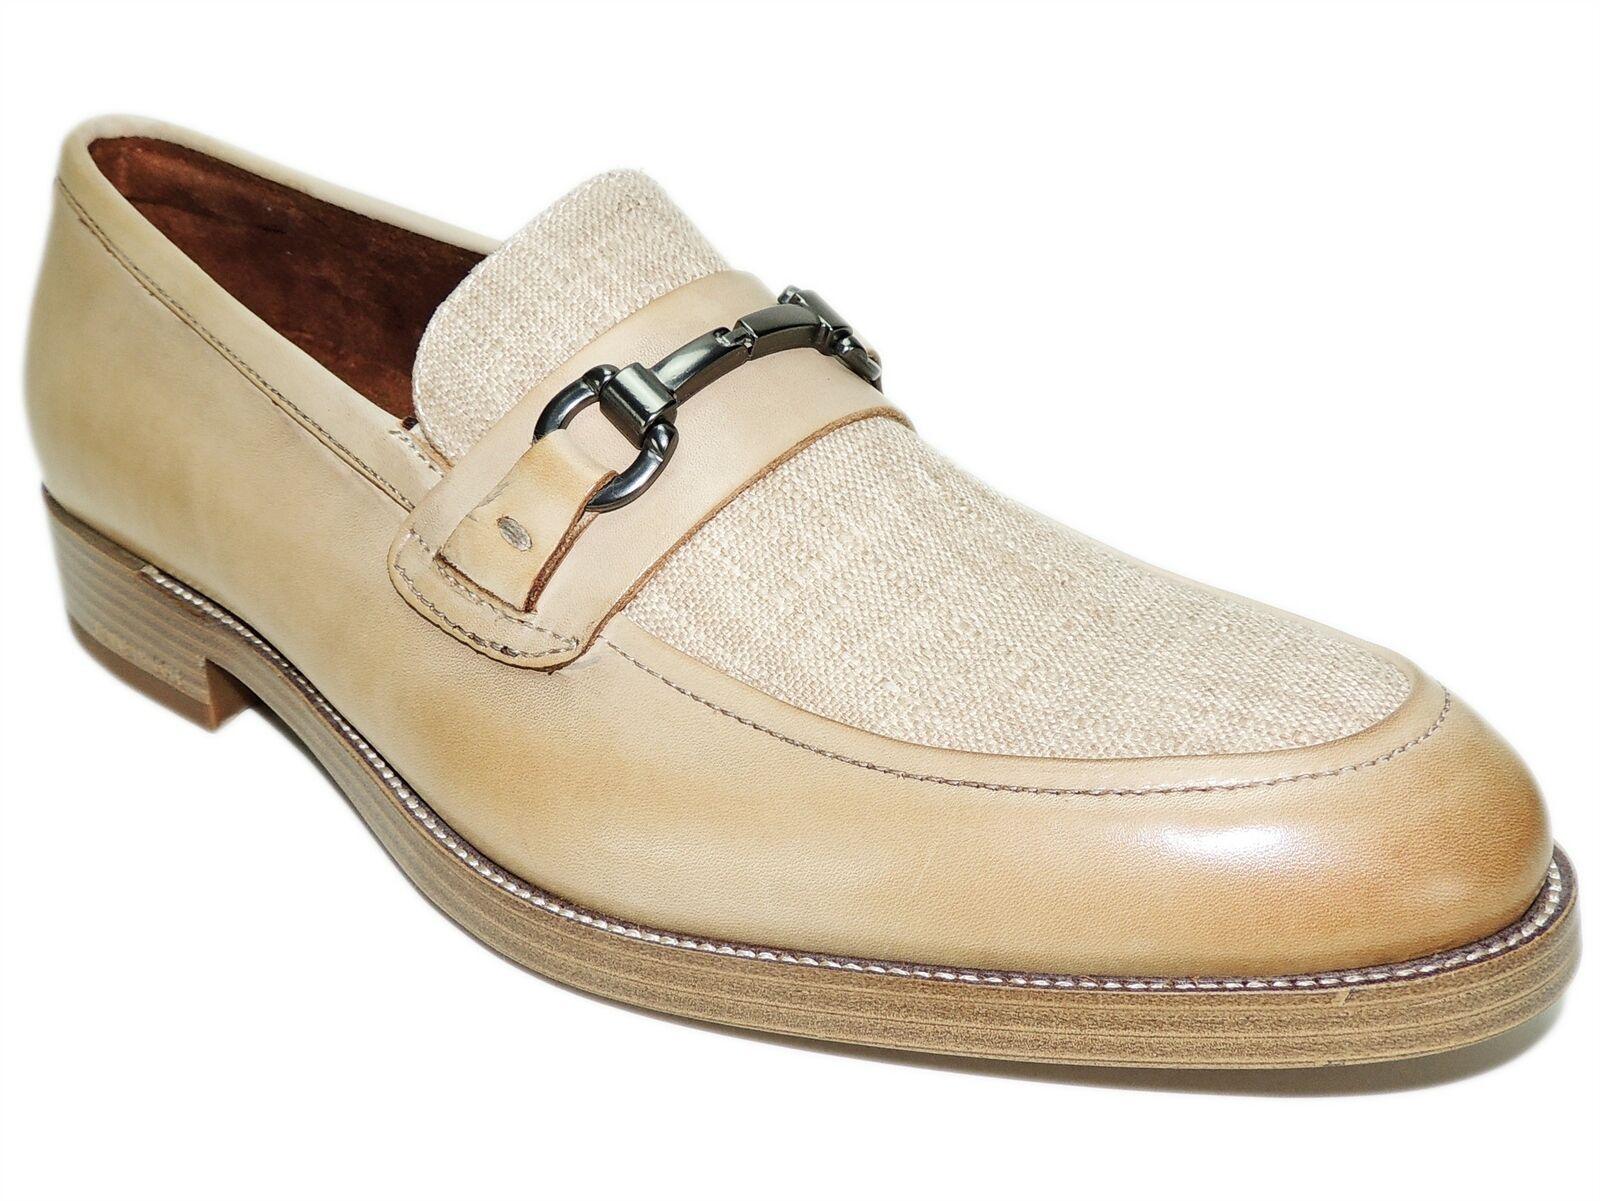 Kenneth Cole New York Men's Brock 2.0 Bit Loafers Beige Leather Size 10 M